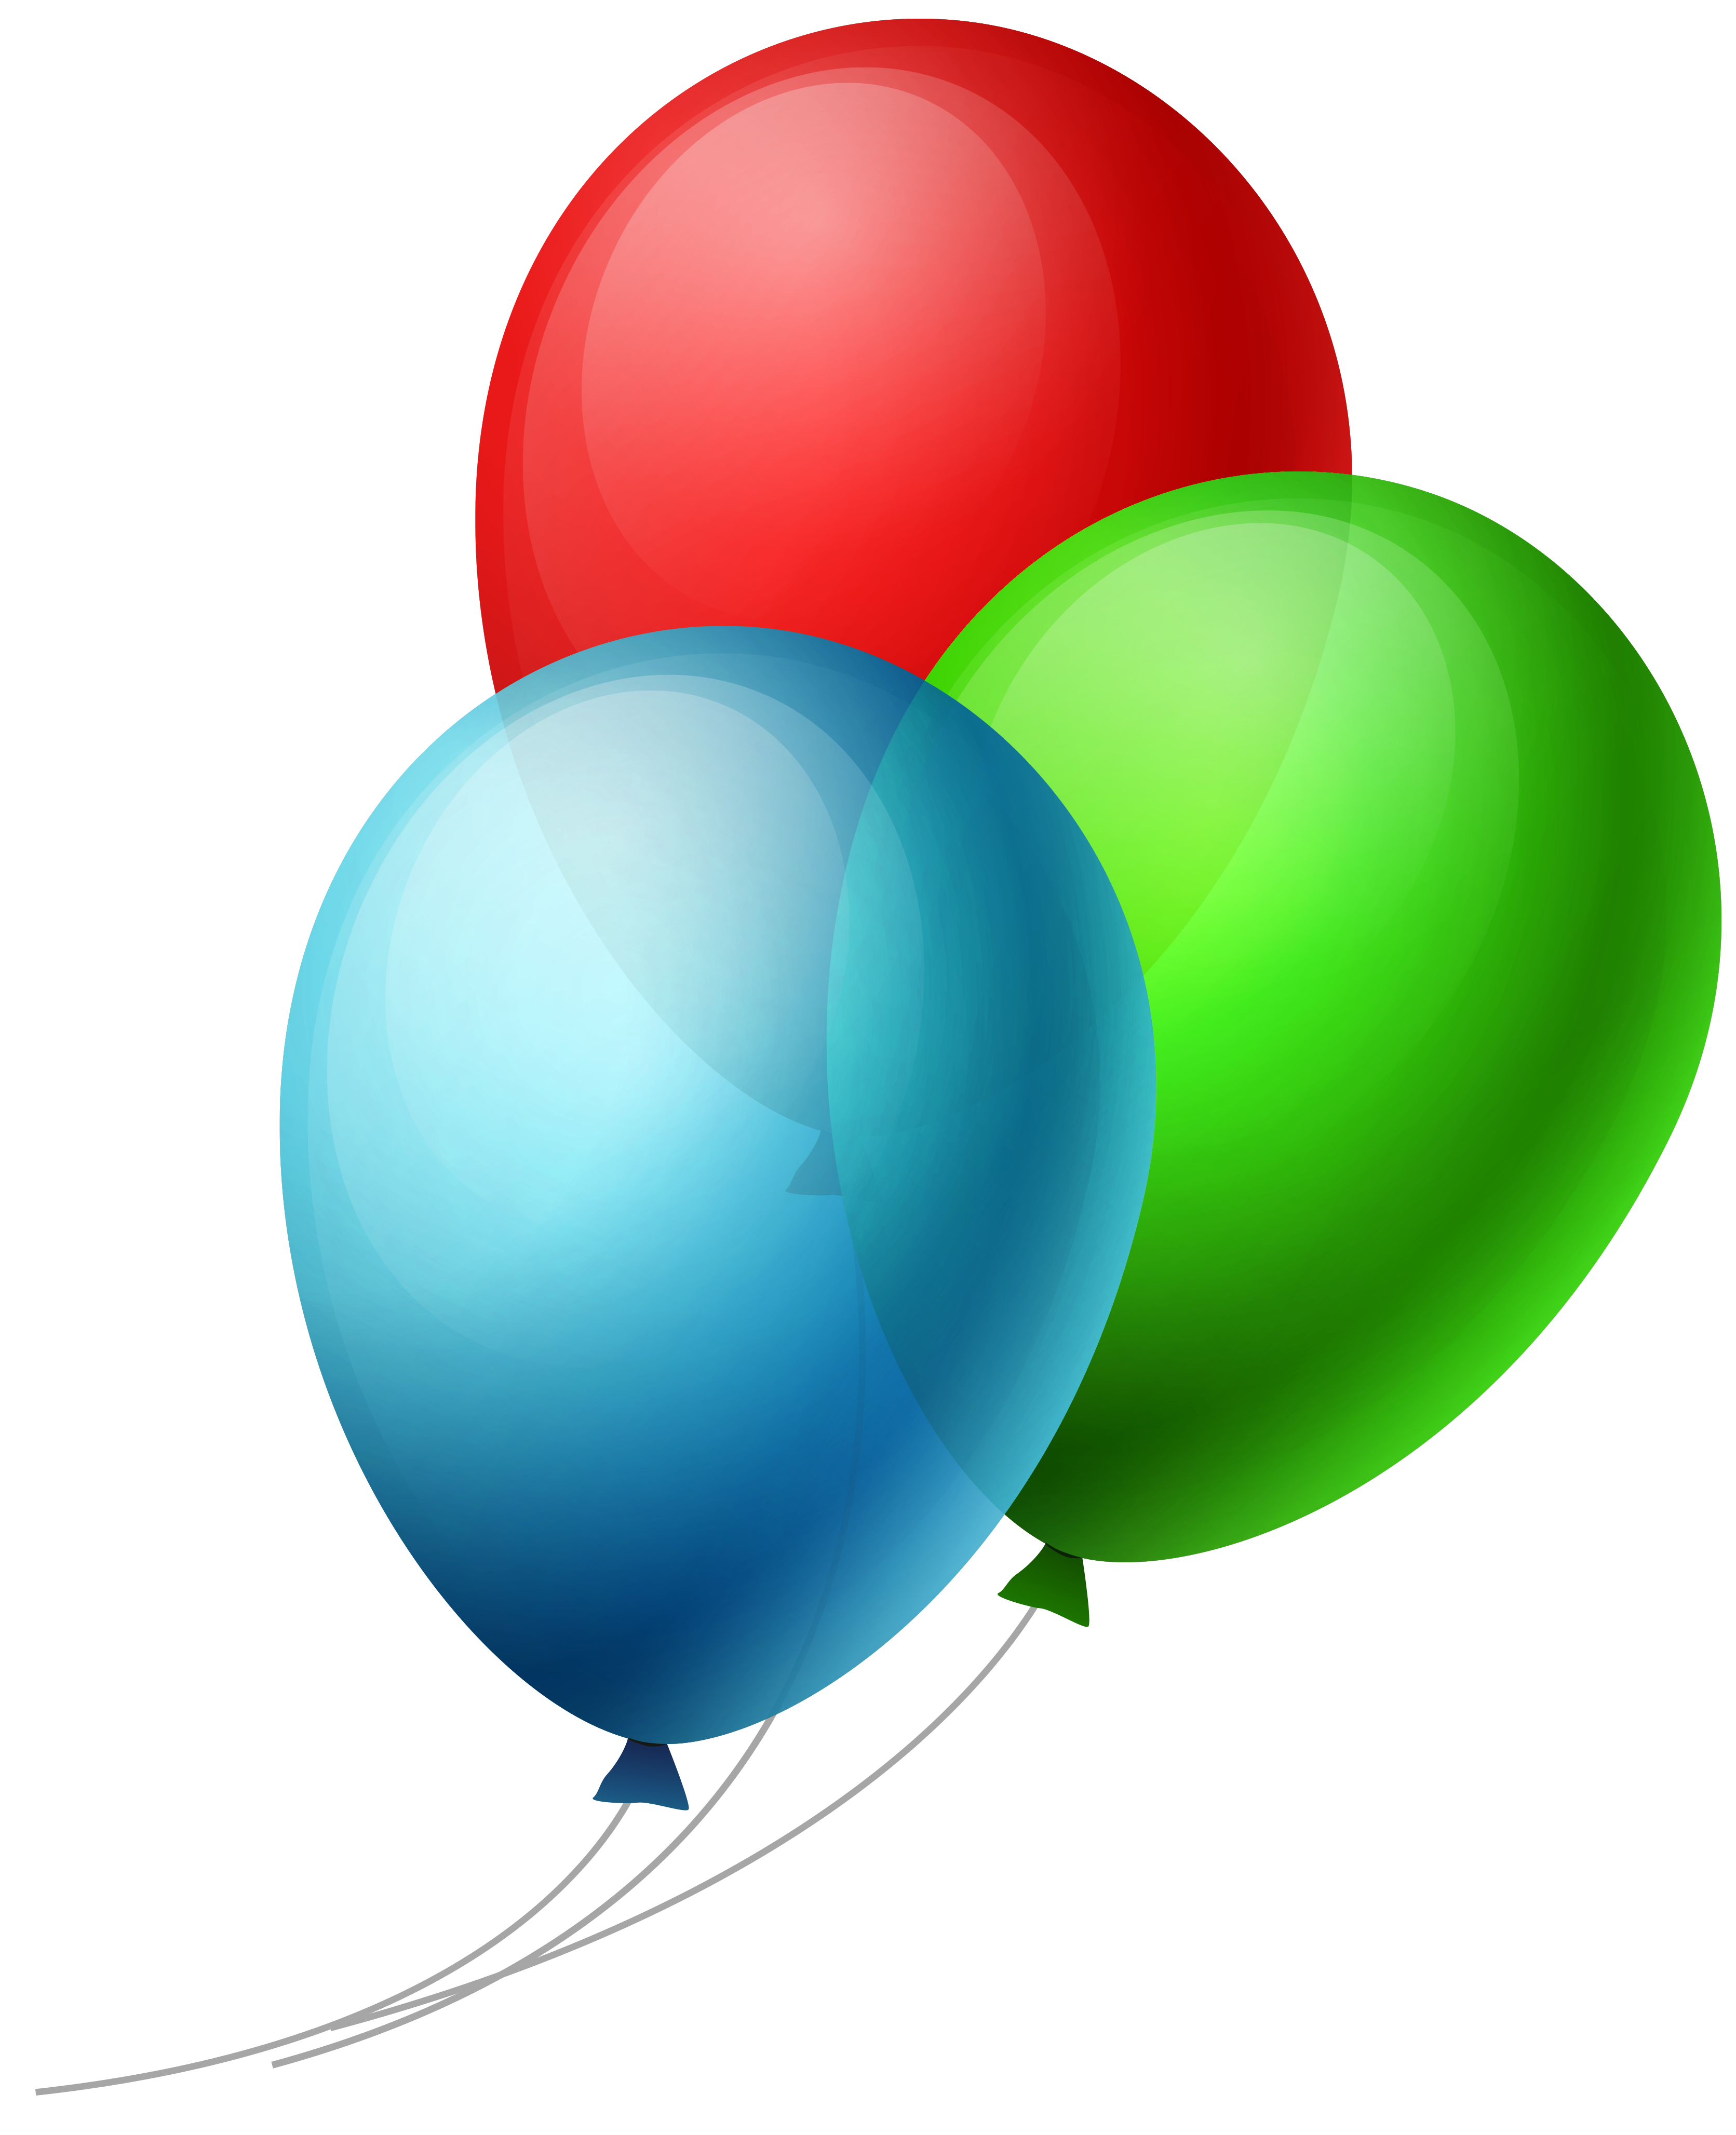 3343x4112 Transparent Three Balloons Png Clipartu200b Gallery Yopriceville